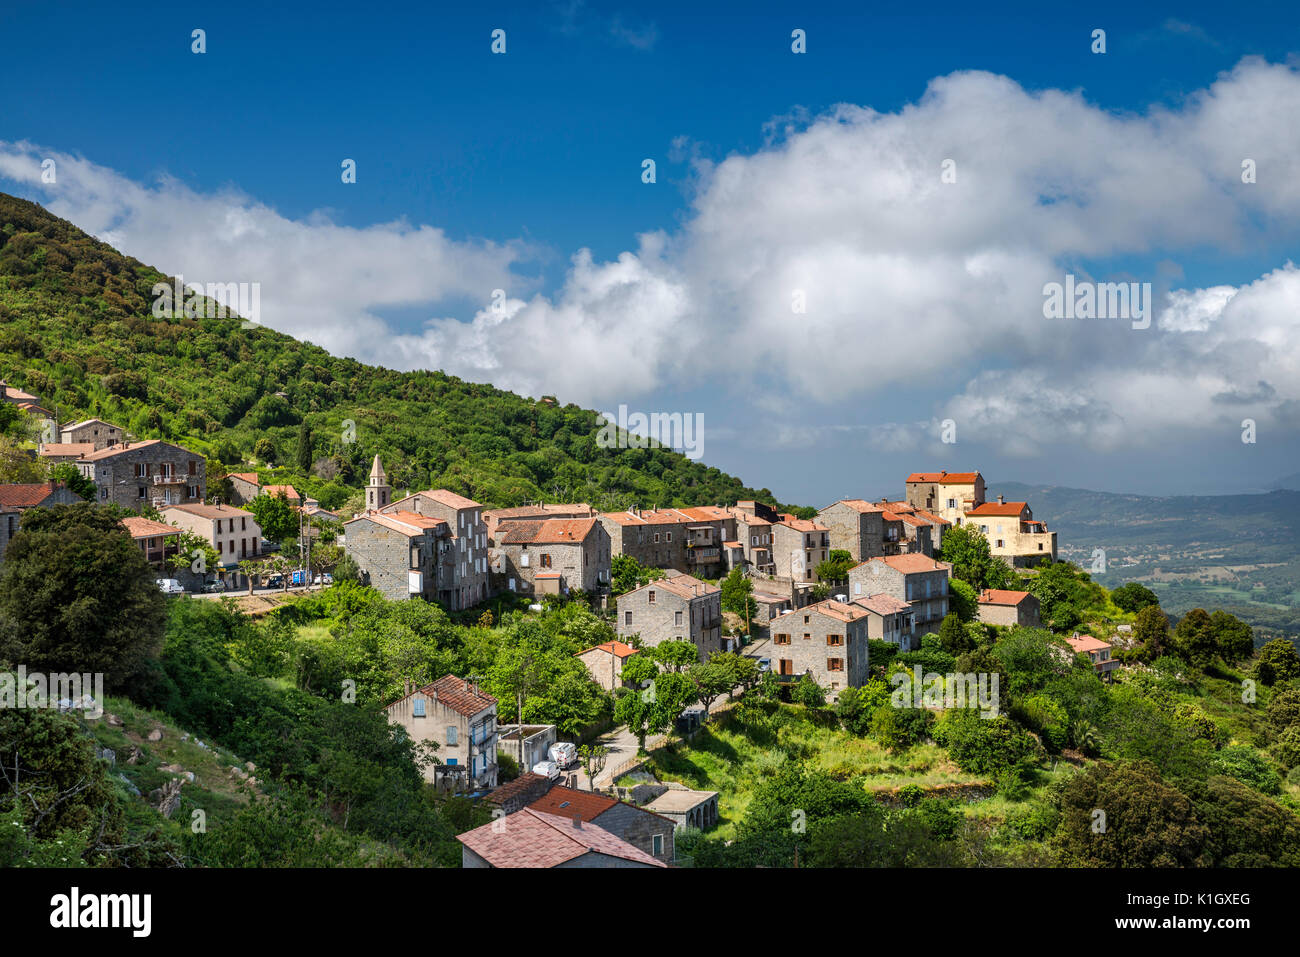 Hill town of Sollacaro, Corse-du-Sud, Corsica, France - Stock Image